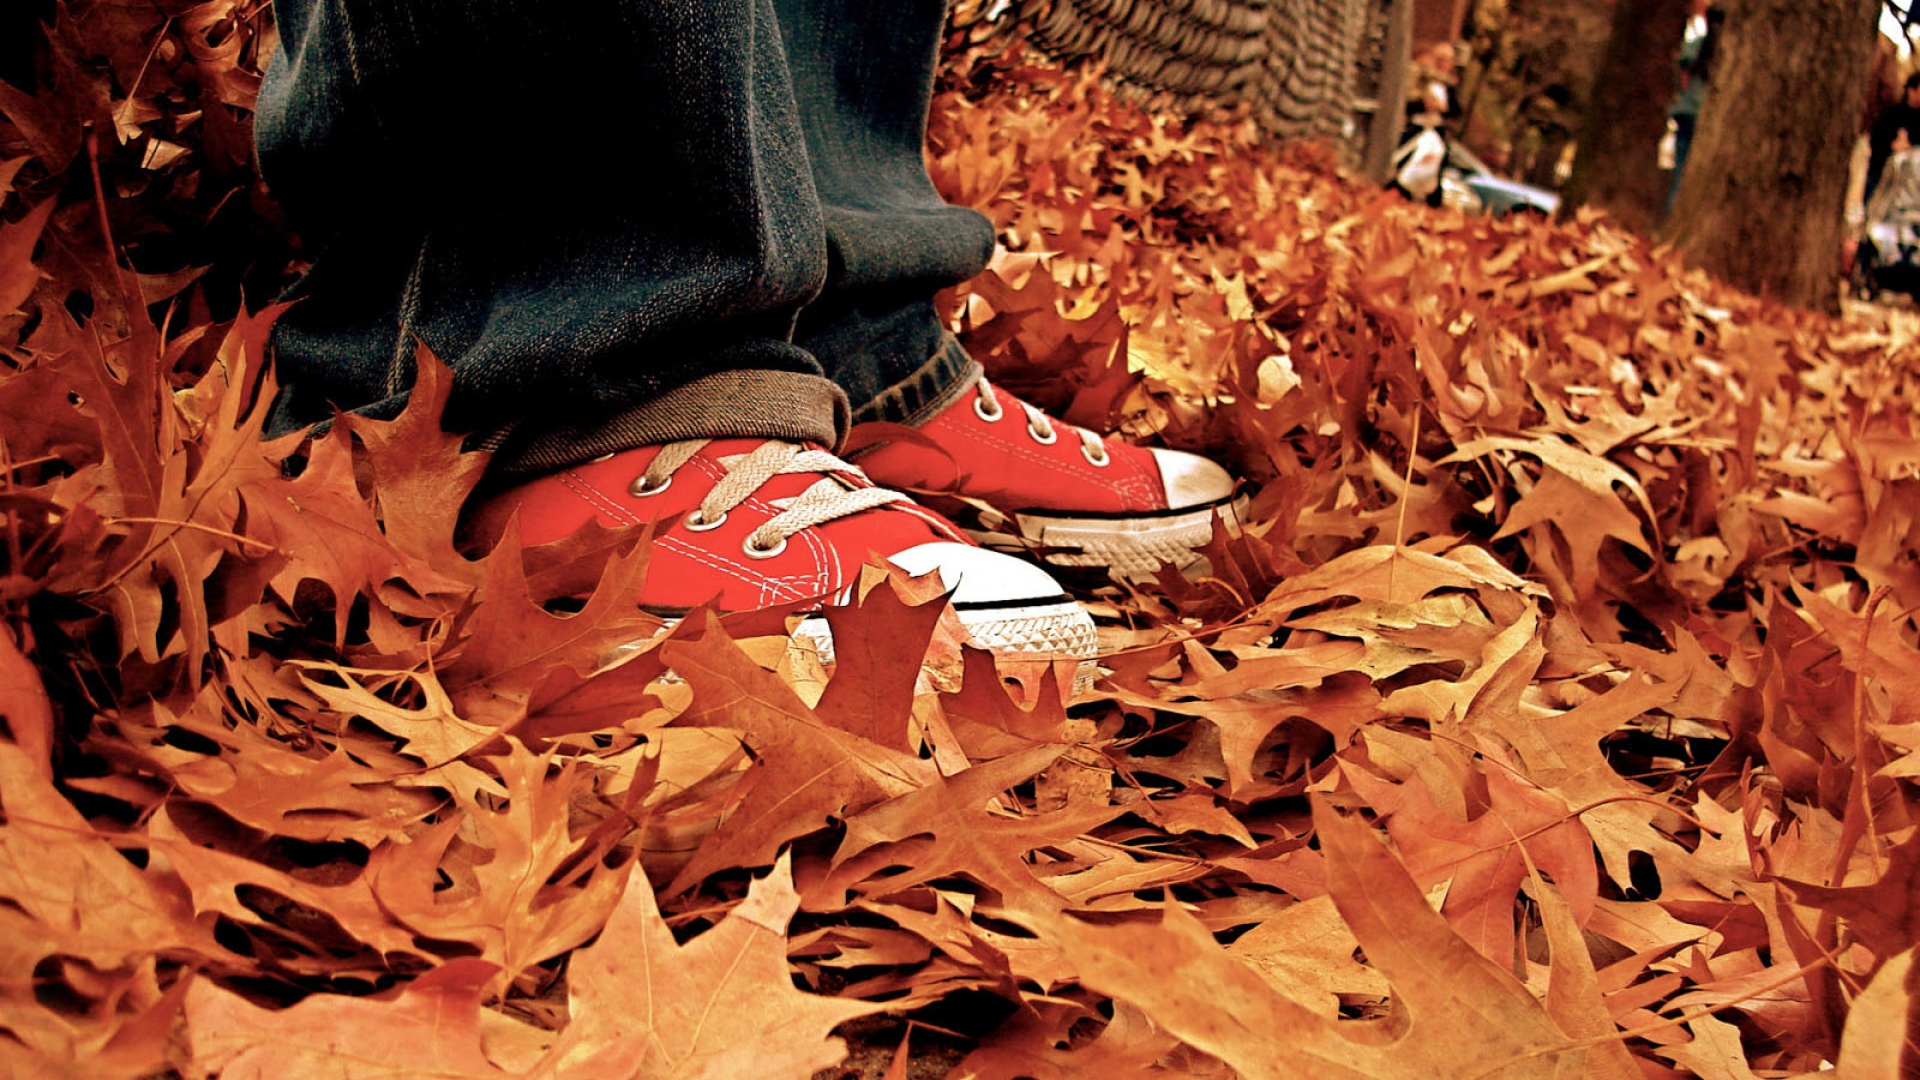 Download Wallpaper 1920x1080 gym shoes, leaves, autumn Full HD 1080p